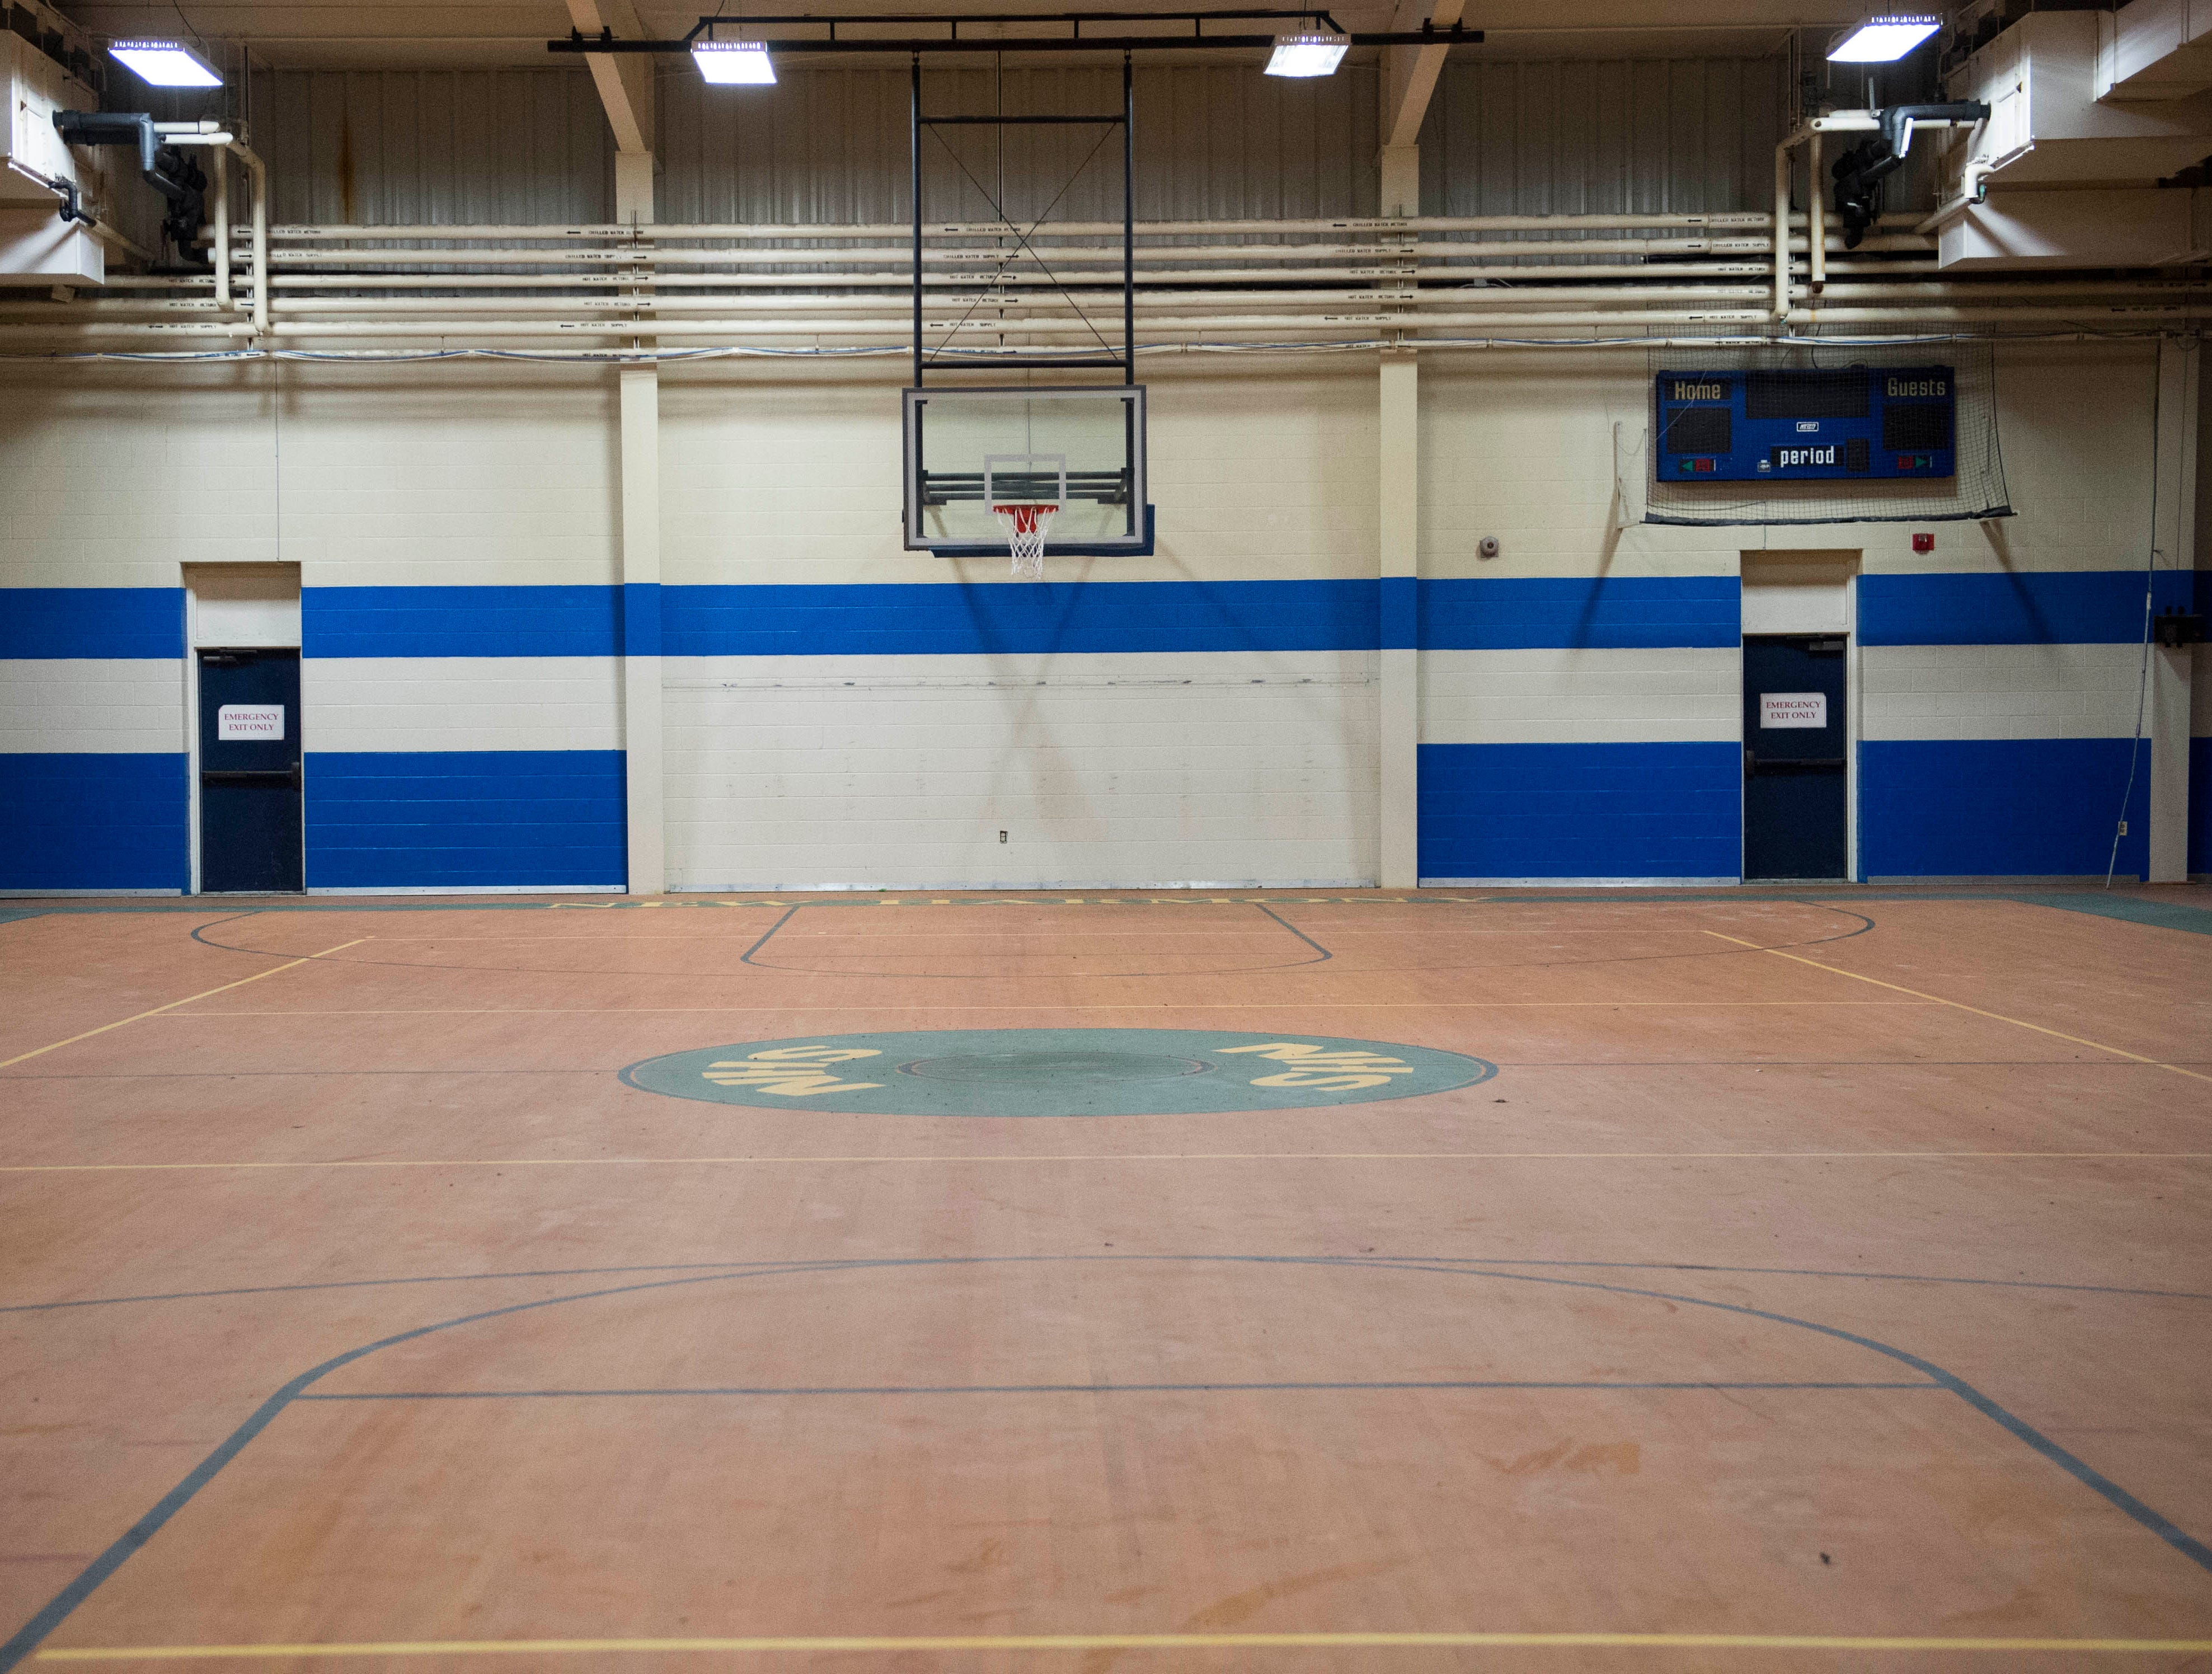 The gymnasium inside New Harmony's empty school building which closed in 2012 due to small enrollment. The Town Council voted 5-0 Tuesday, March 19, 2019 to sell the building to Erik Arneberg for $125,000.